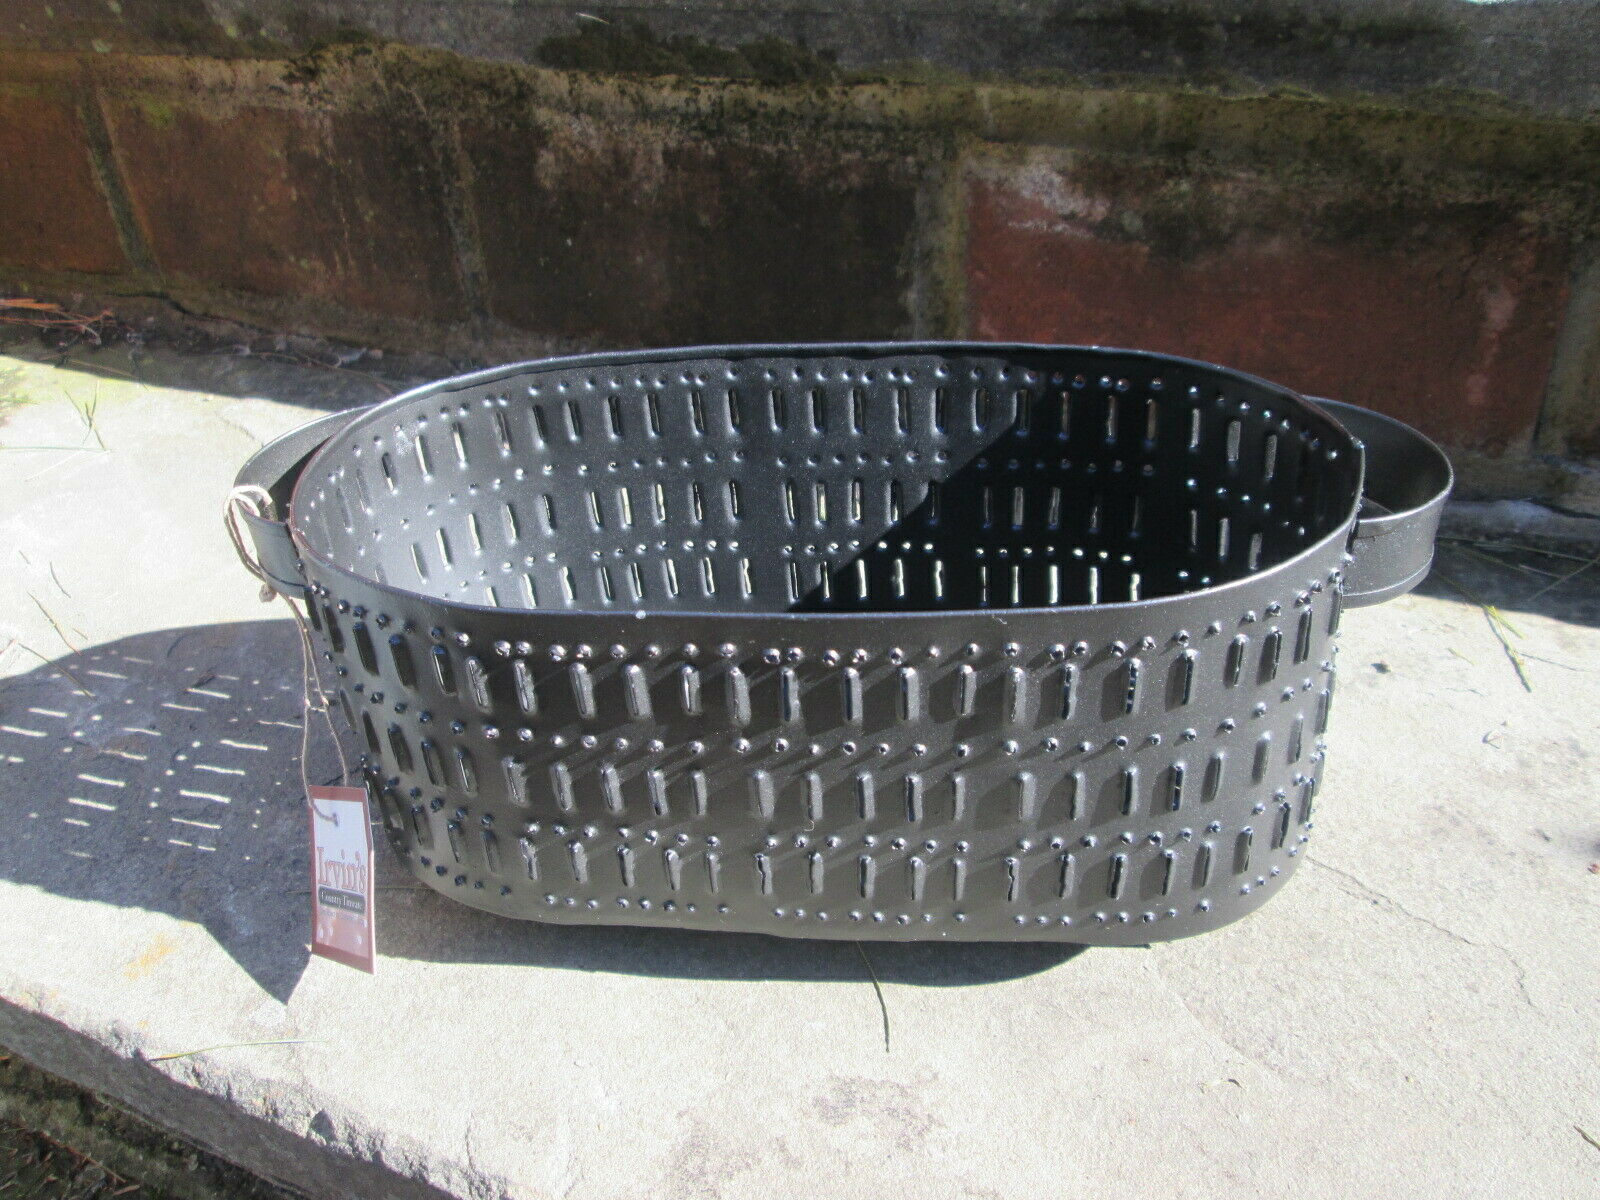 COLONIAL 18TH C REPRO OVAL MOLD COLANDER CHEESE BERRY DRAINER PUNCHED TIN NEW